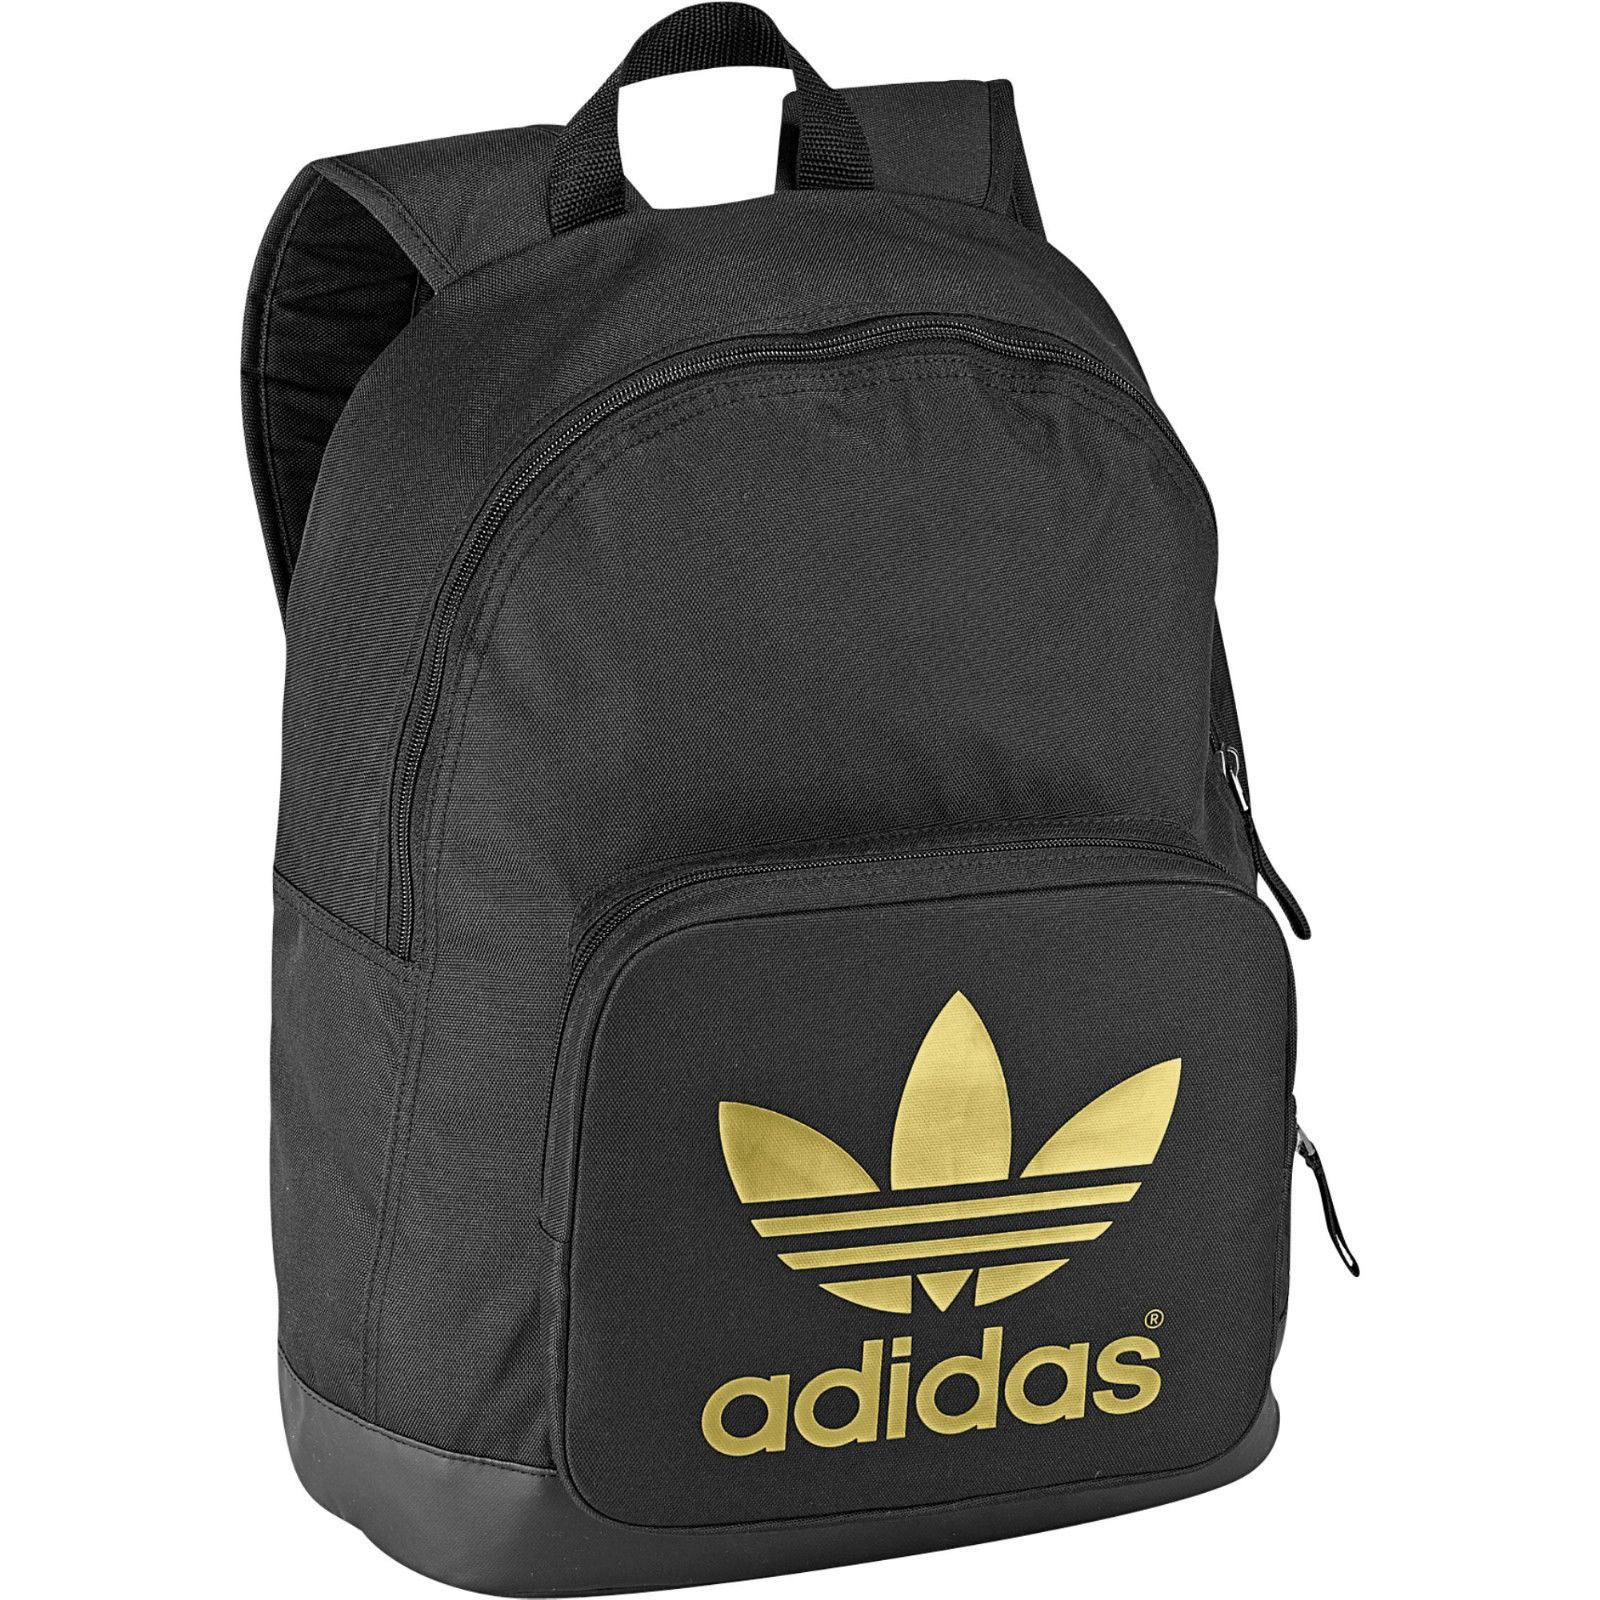 Adidas Originals Backpacks Mens Boys Girls Adidas School Backbags Rucksacks   f8fd284e71d43